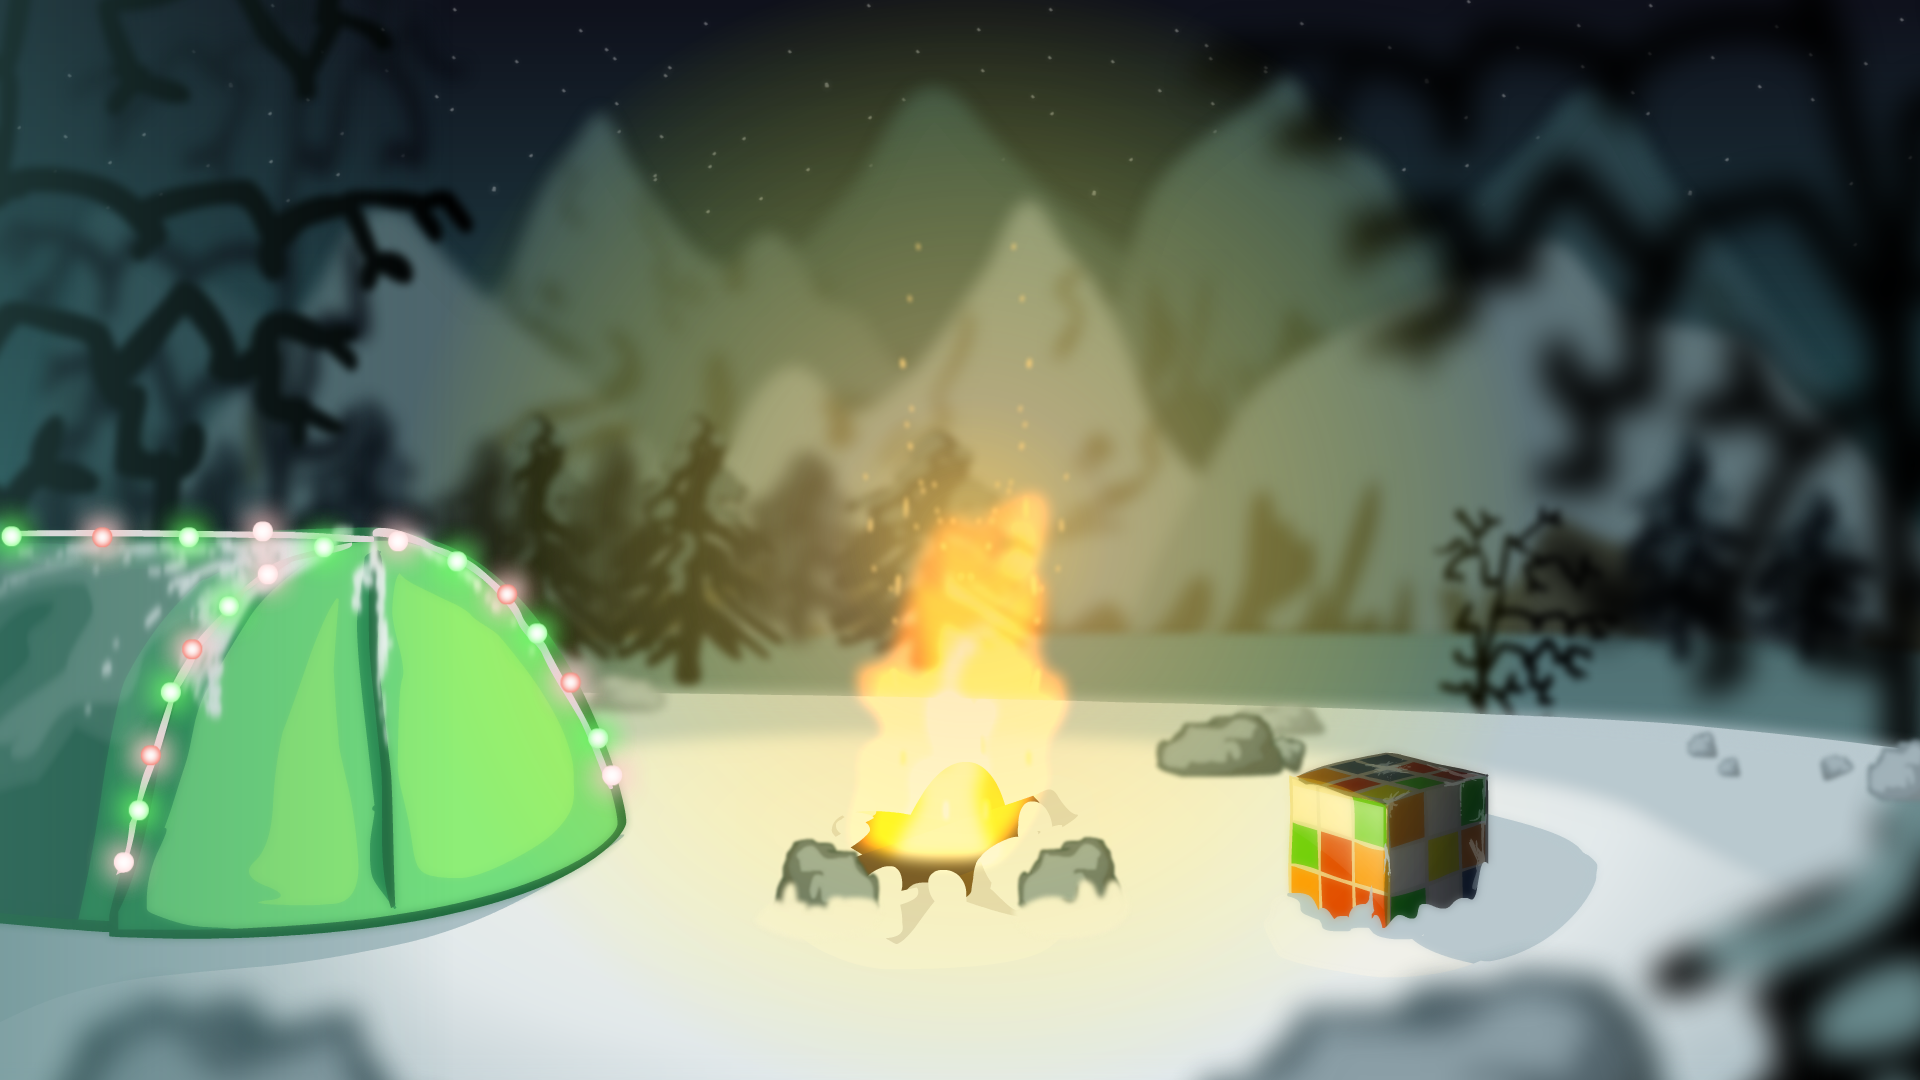 Cube Chilling by Christmas Campfire